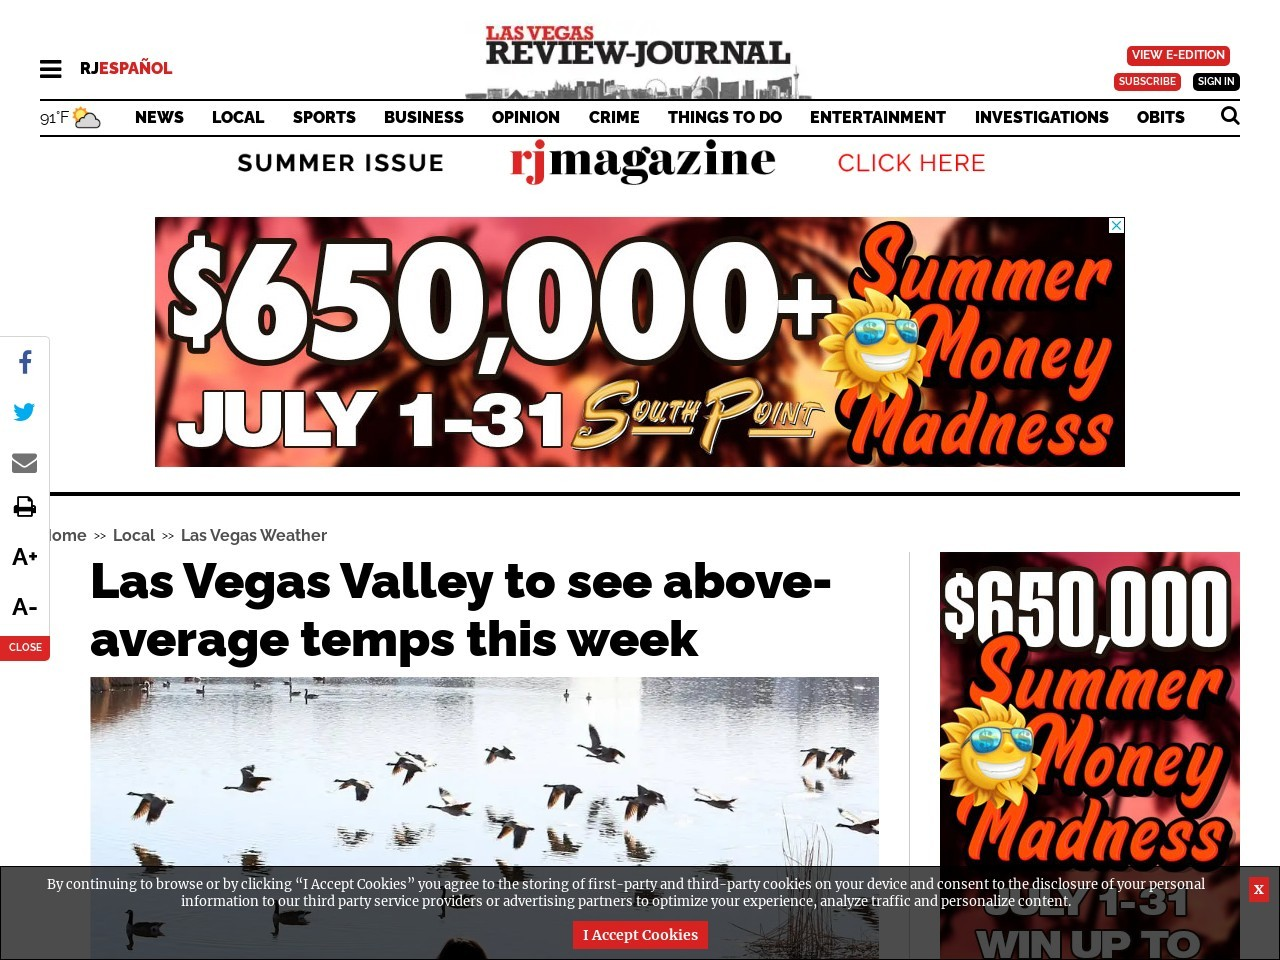 Las Vegas Valley to see above-average temps this week